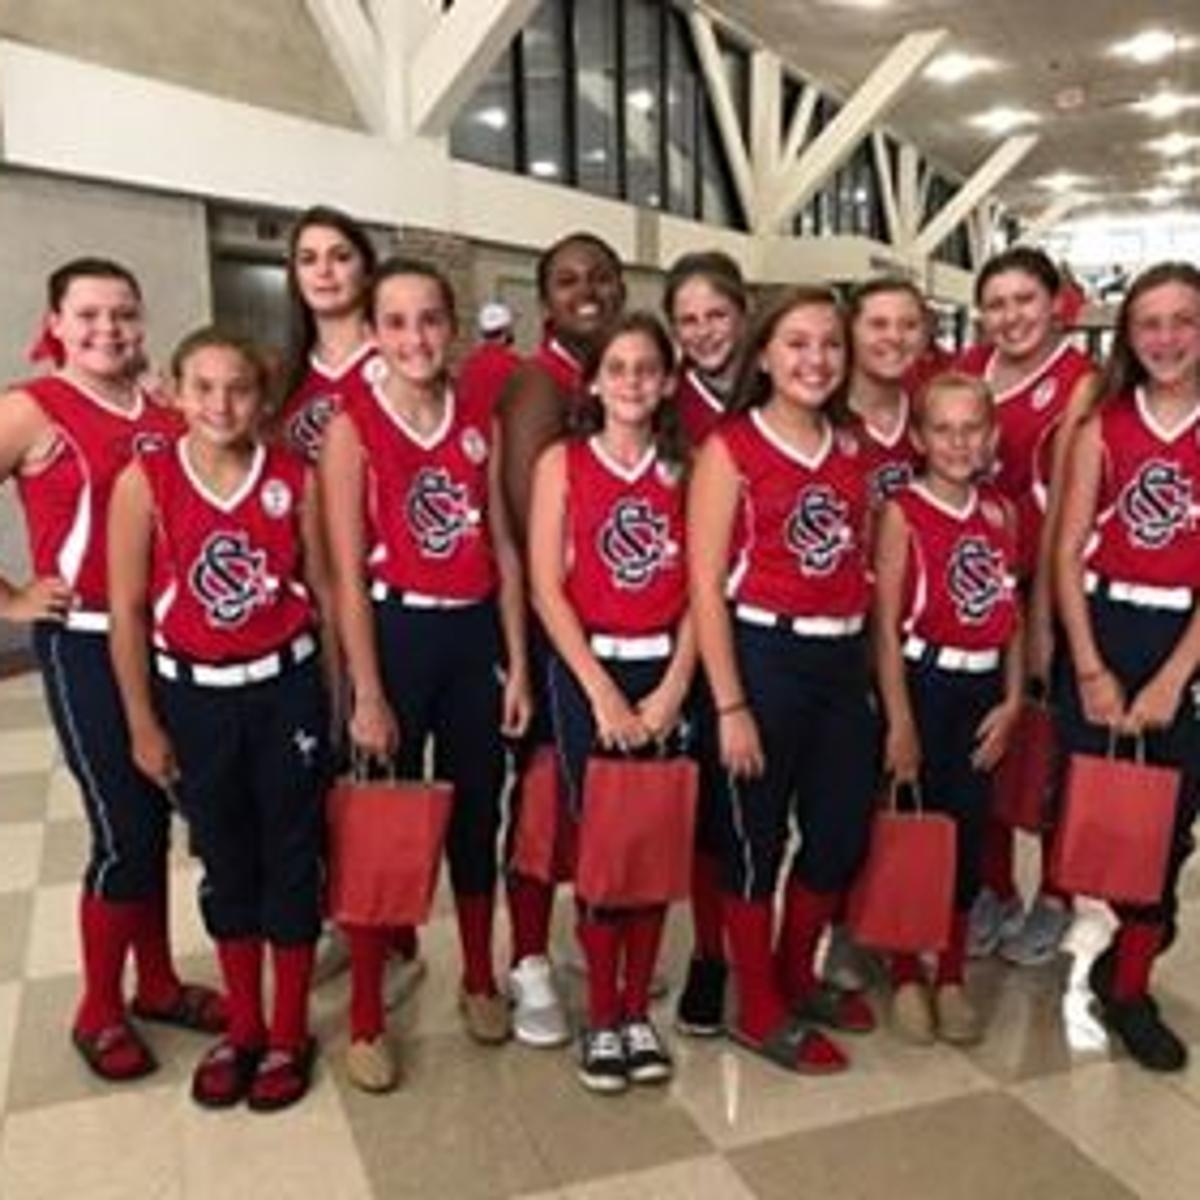 Pamplico 12-under Ponytails' softball team wins state, now